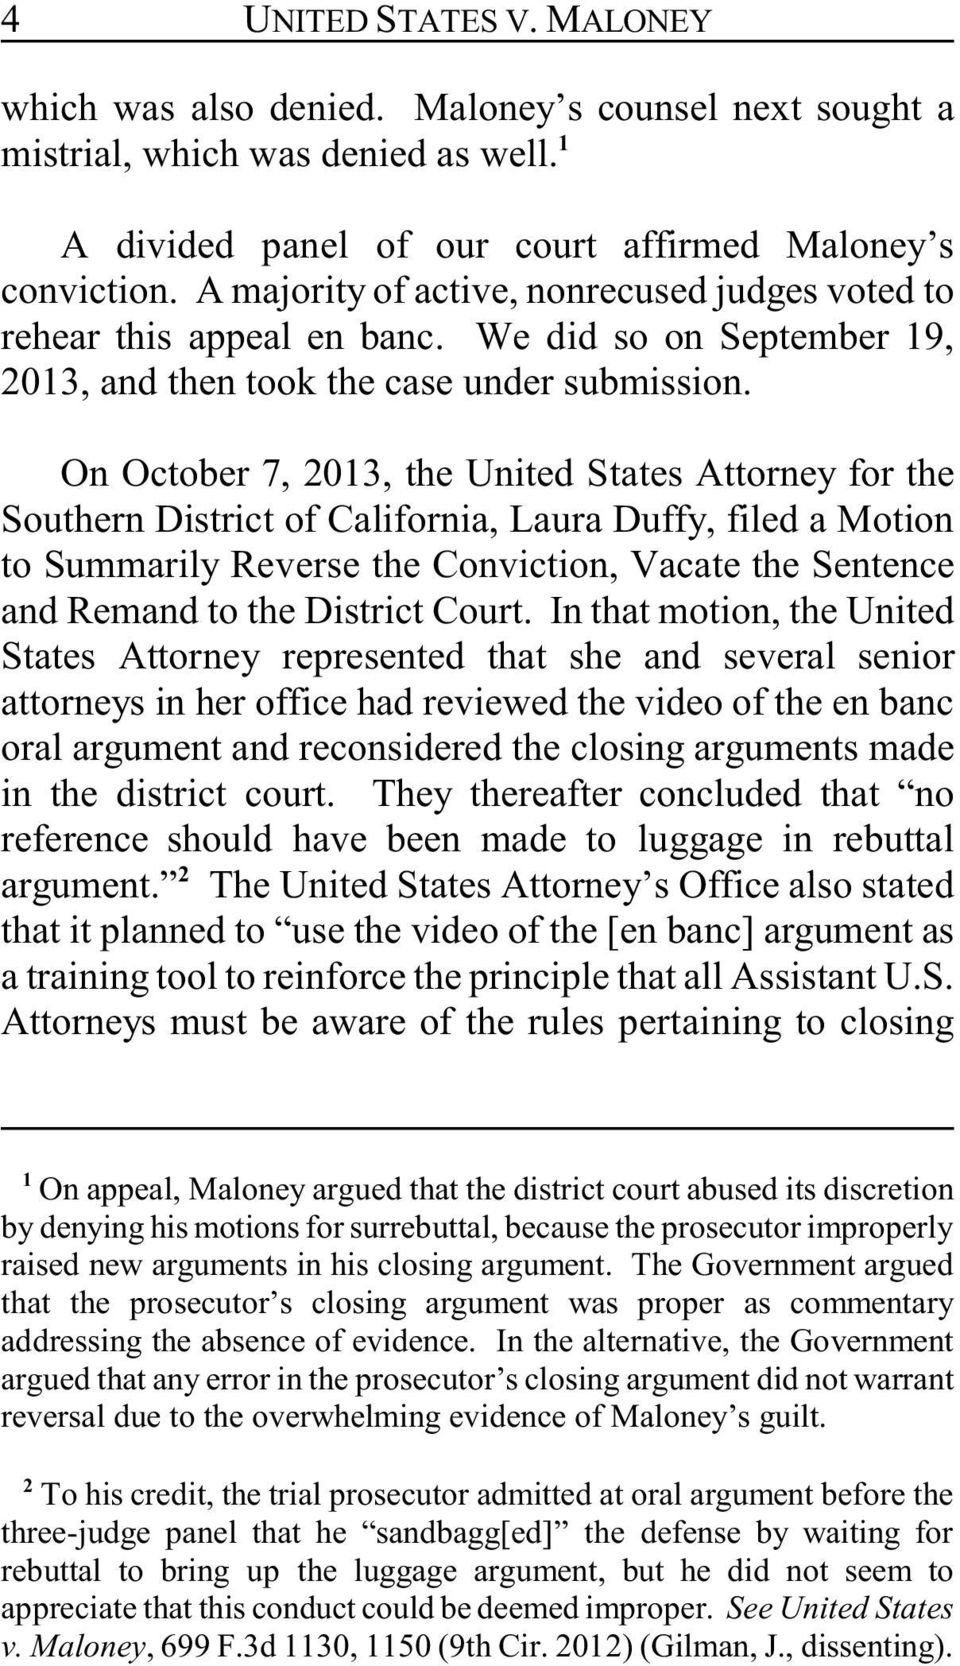 On October 7, 2013, the United States Attorney for the Southern District of California, Laura Duffy, filed a Motion to Summarily Reverse the Conviction, Vacate the Sentence and Remand to the District